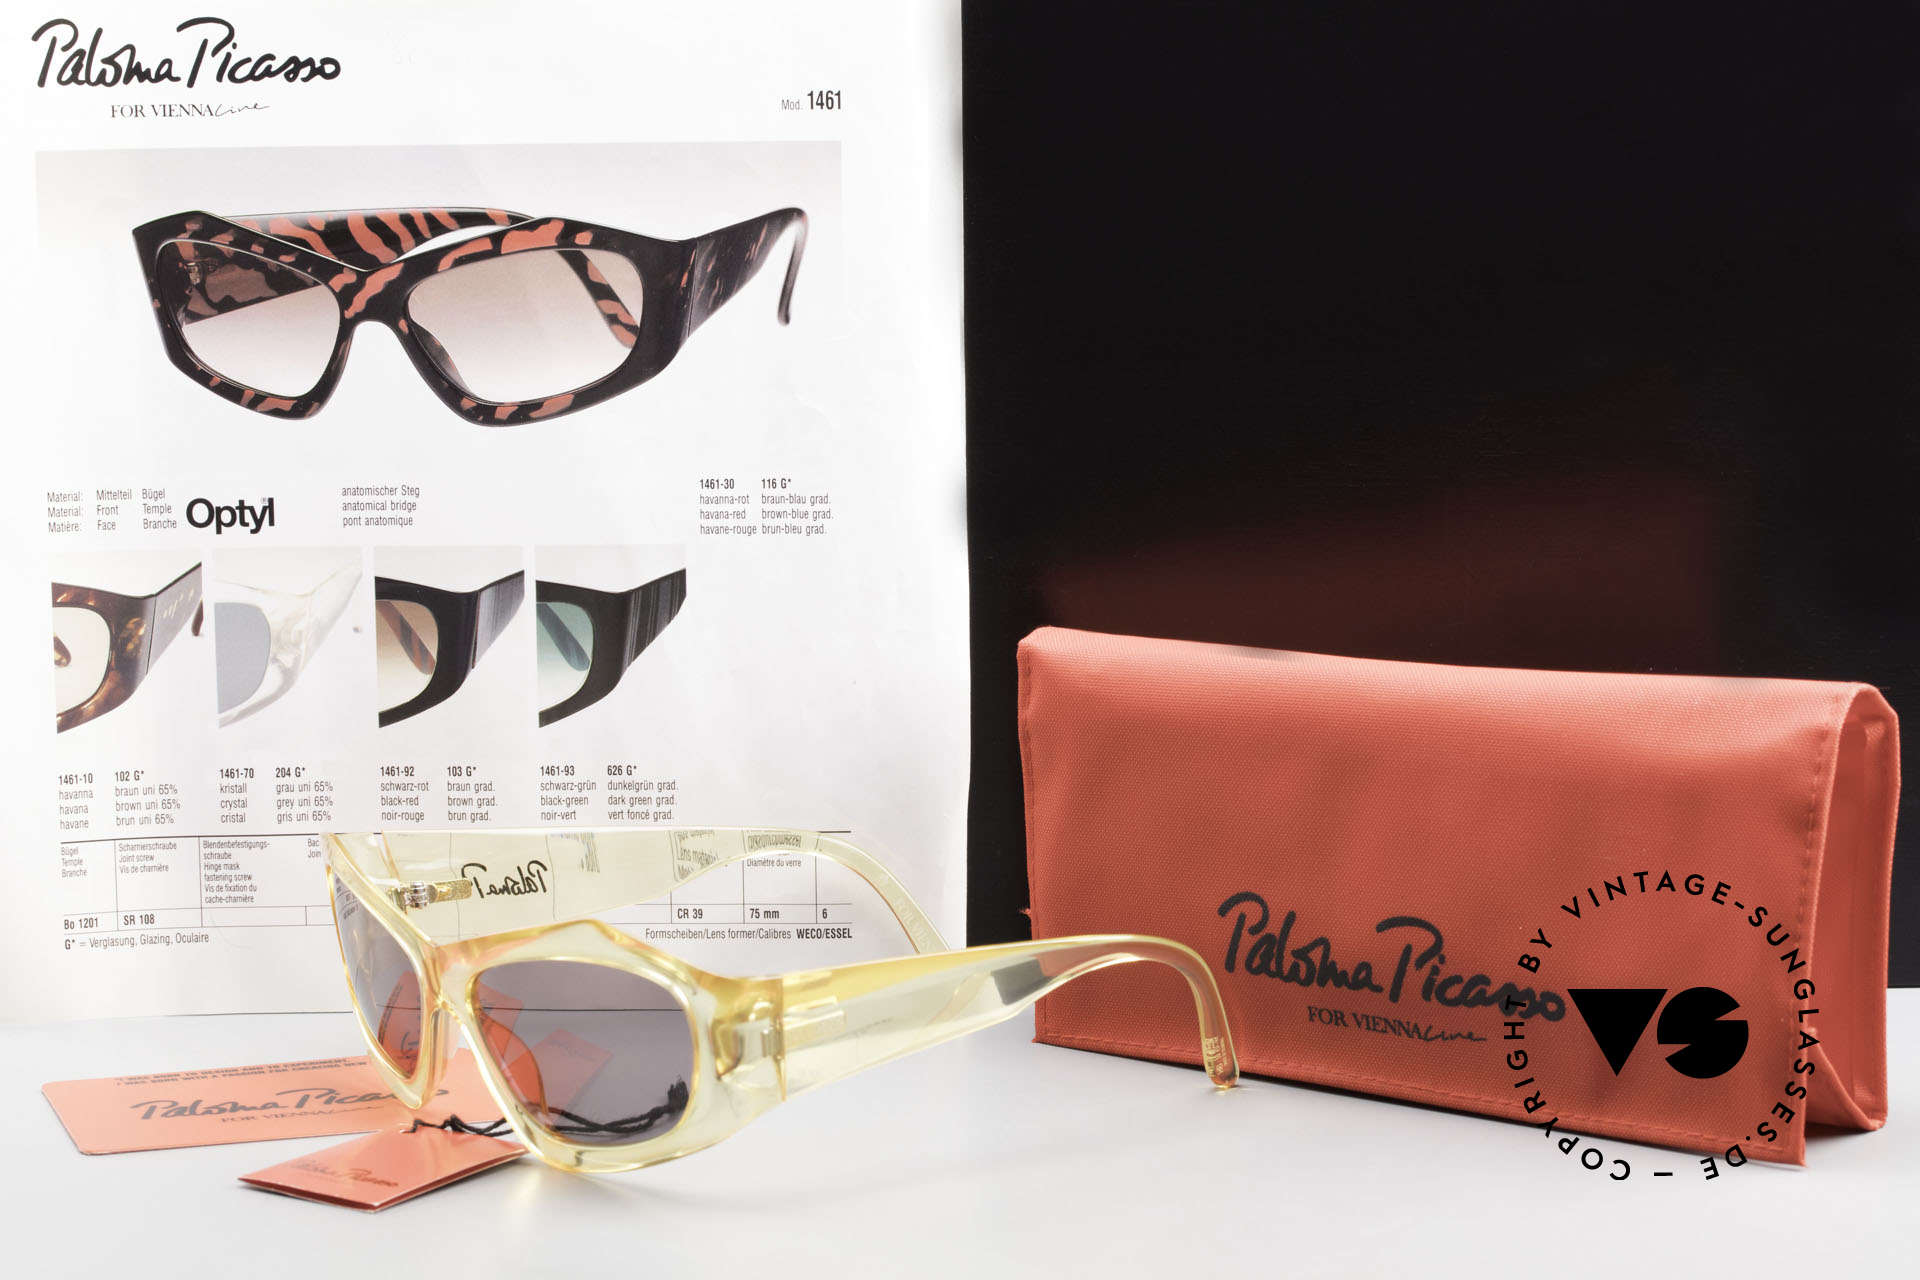 Paloma Picasso 1461 90's Case Can Be Used As Purse, NO RETRO style shades! but a proud original one!, Made for Women